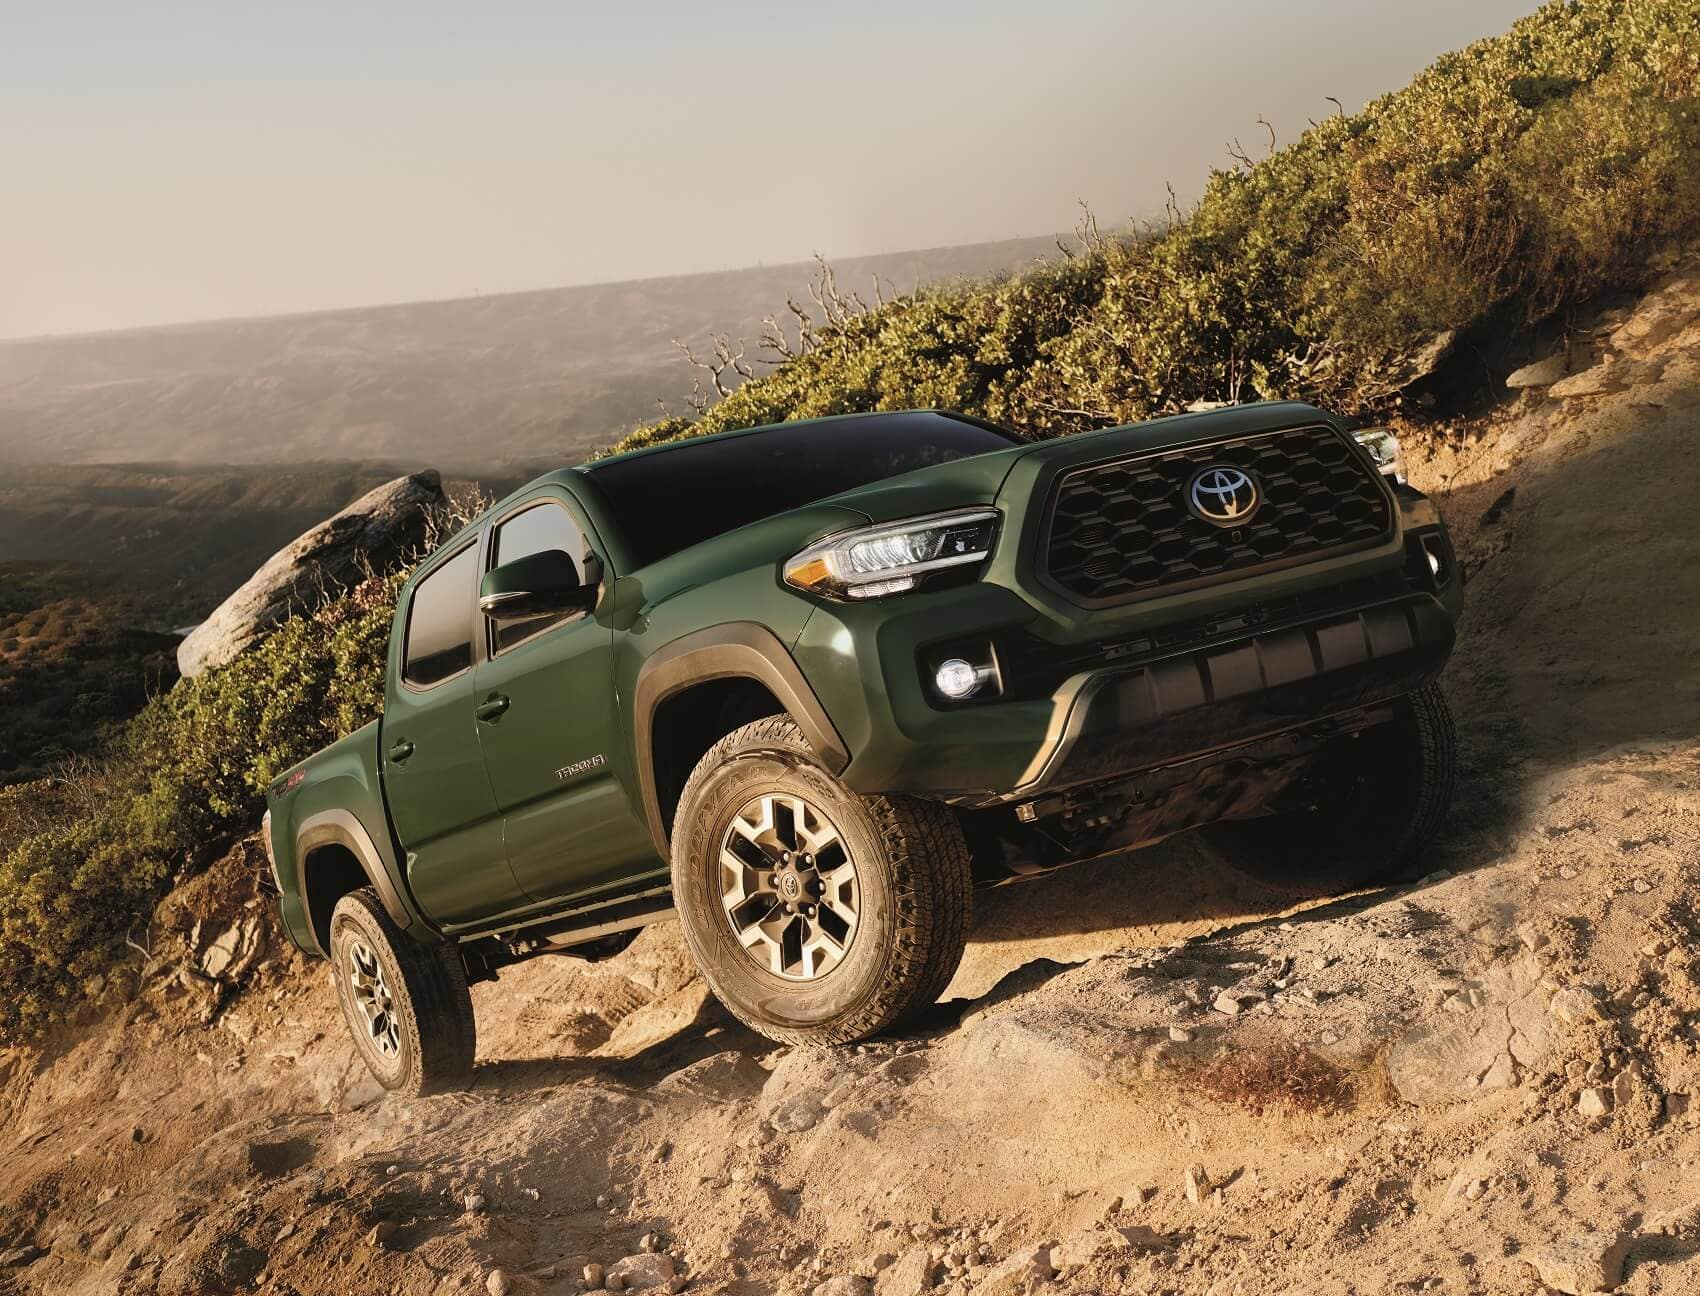 Toyota Tacoma: Small but Mighty